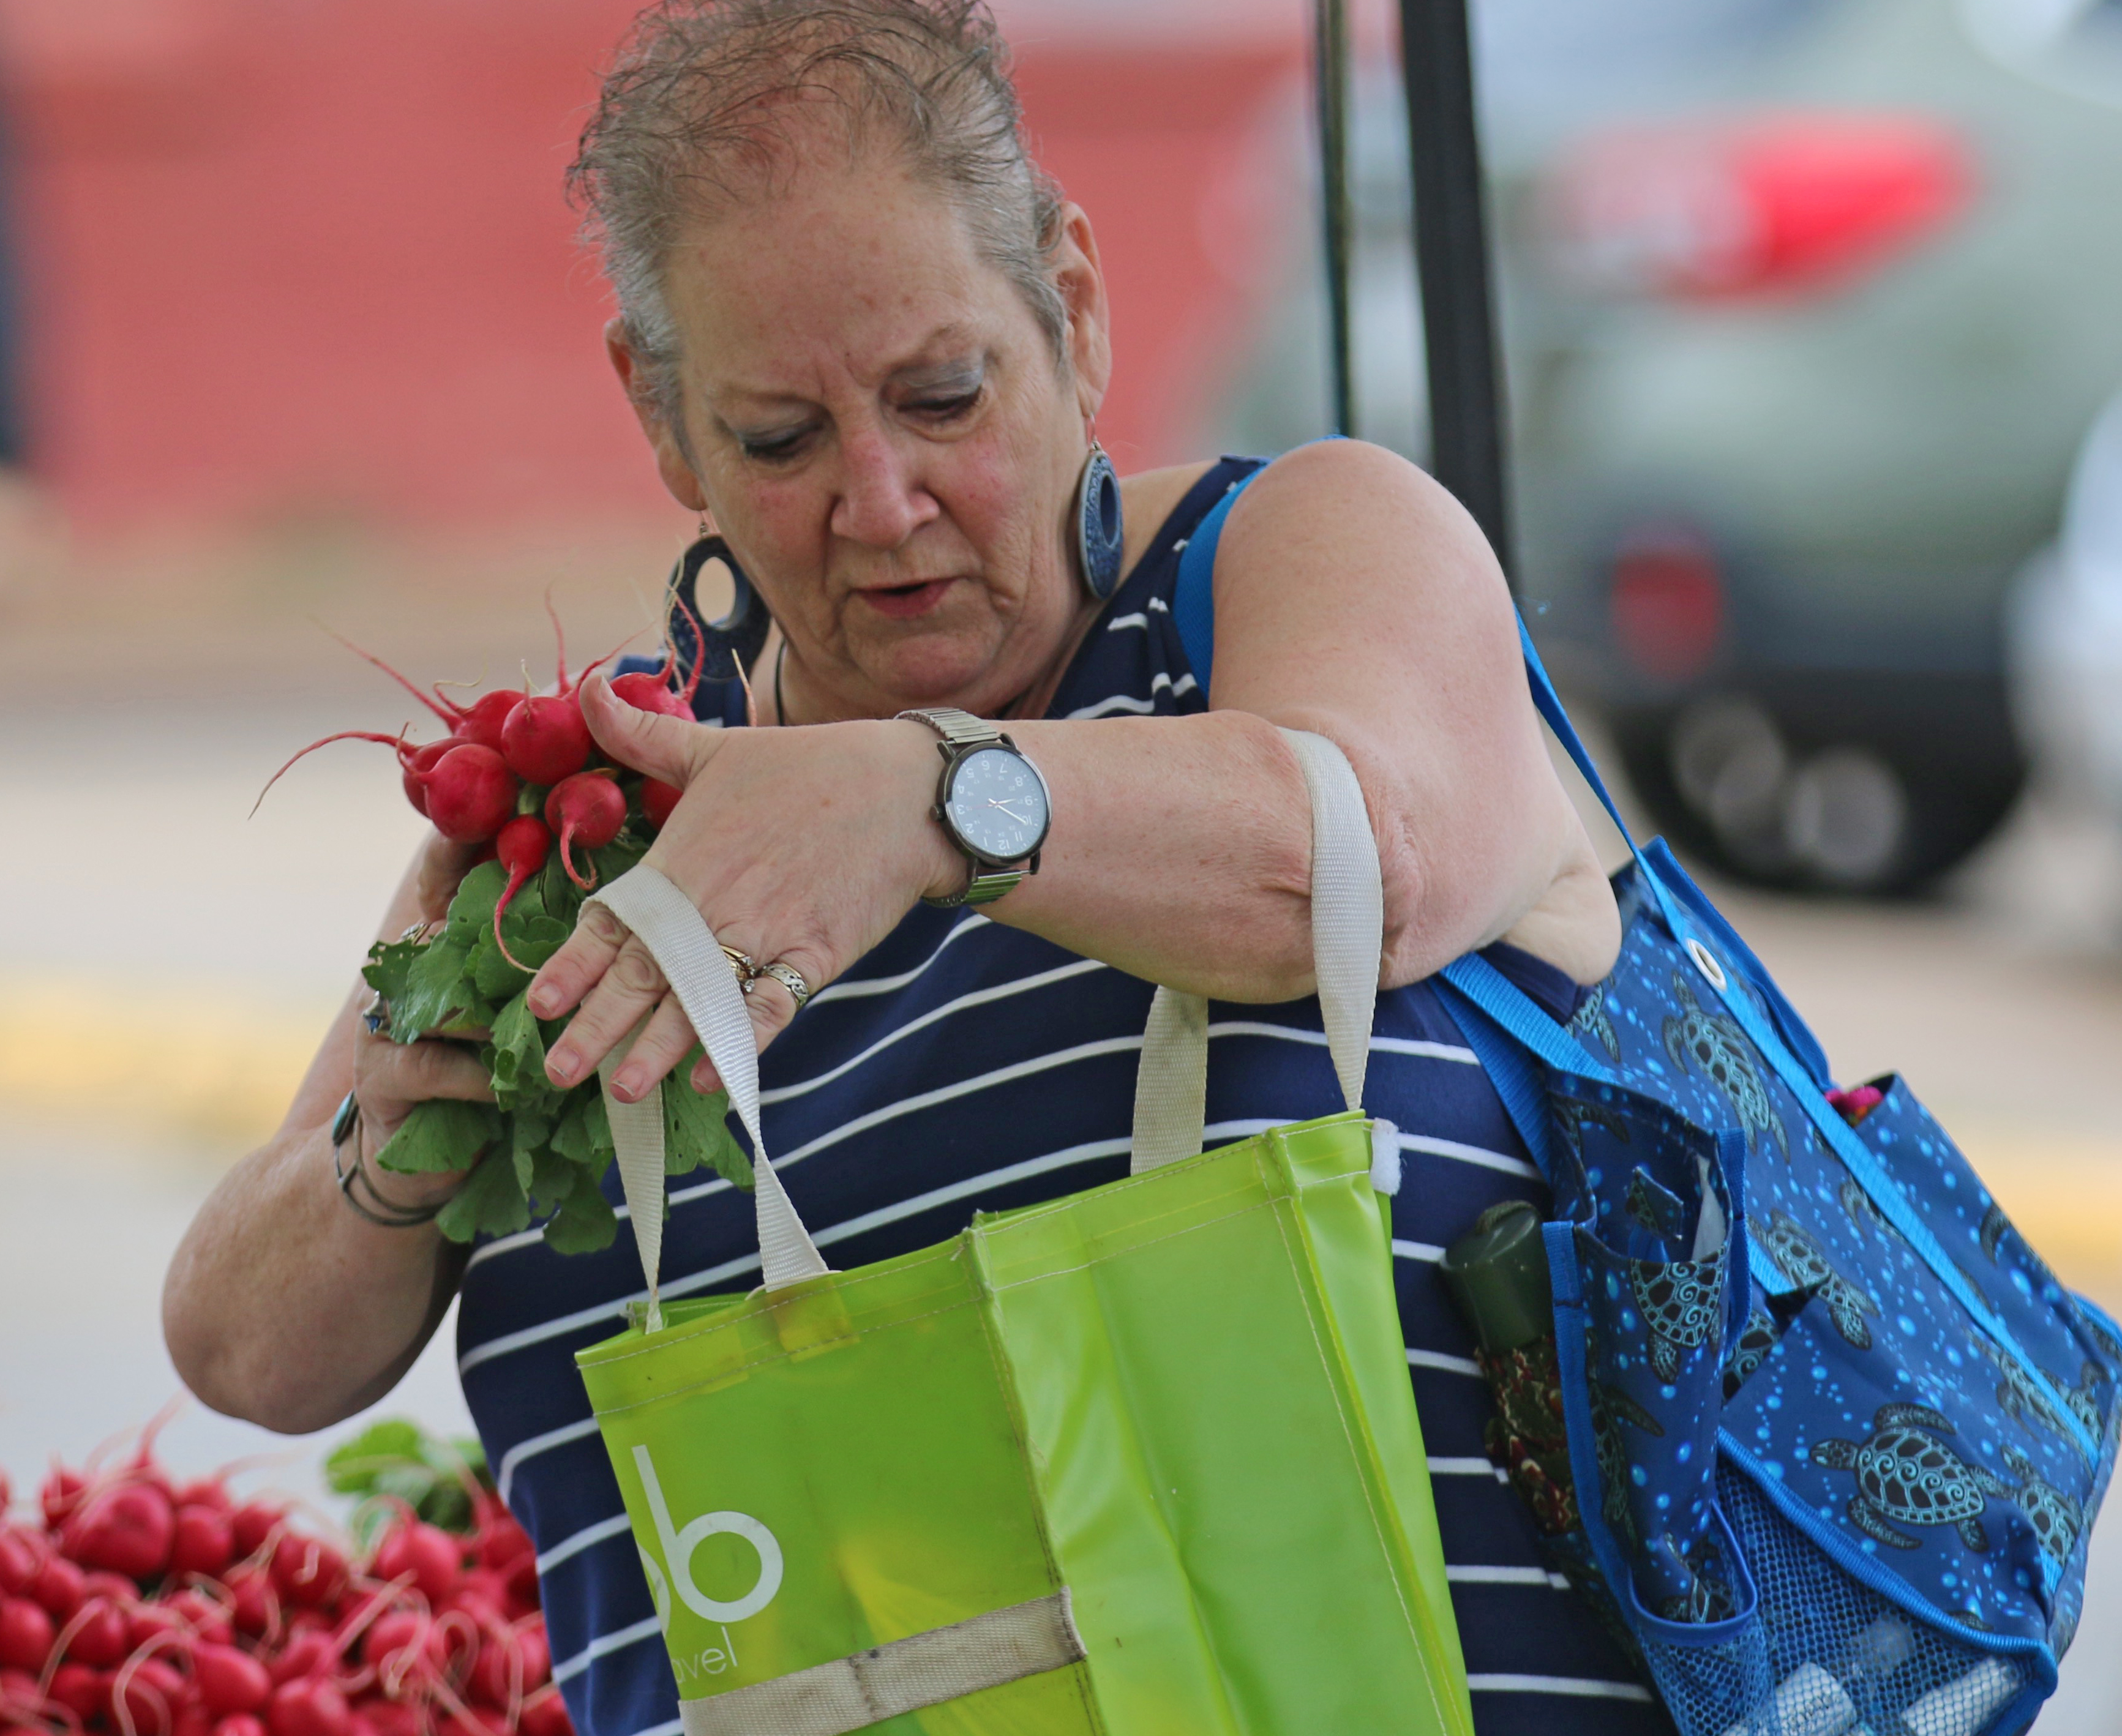 Cindy Keuschel, a Loon Lake resident, selects radishes at the first Farmers Market of 2020 in Shawano. The market had regular attendees, according to the FRESH Project, new organizers of the market, despite the regular downpours Saturday morning.Carol Ryczek | NEW Media